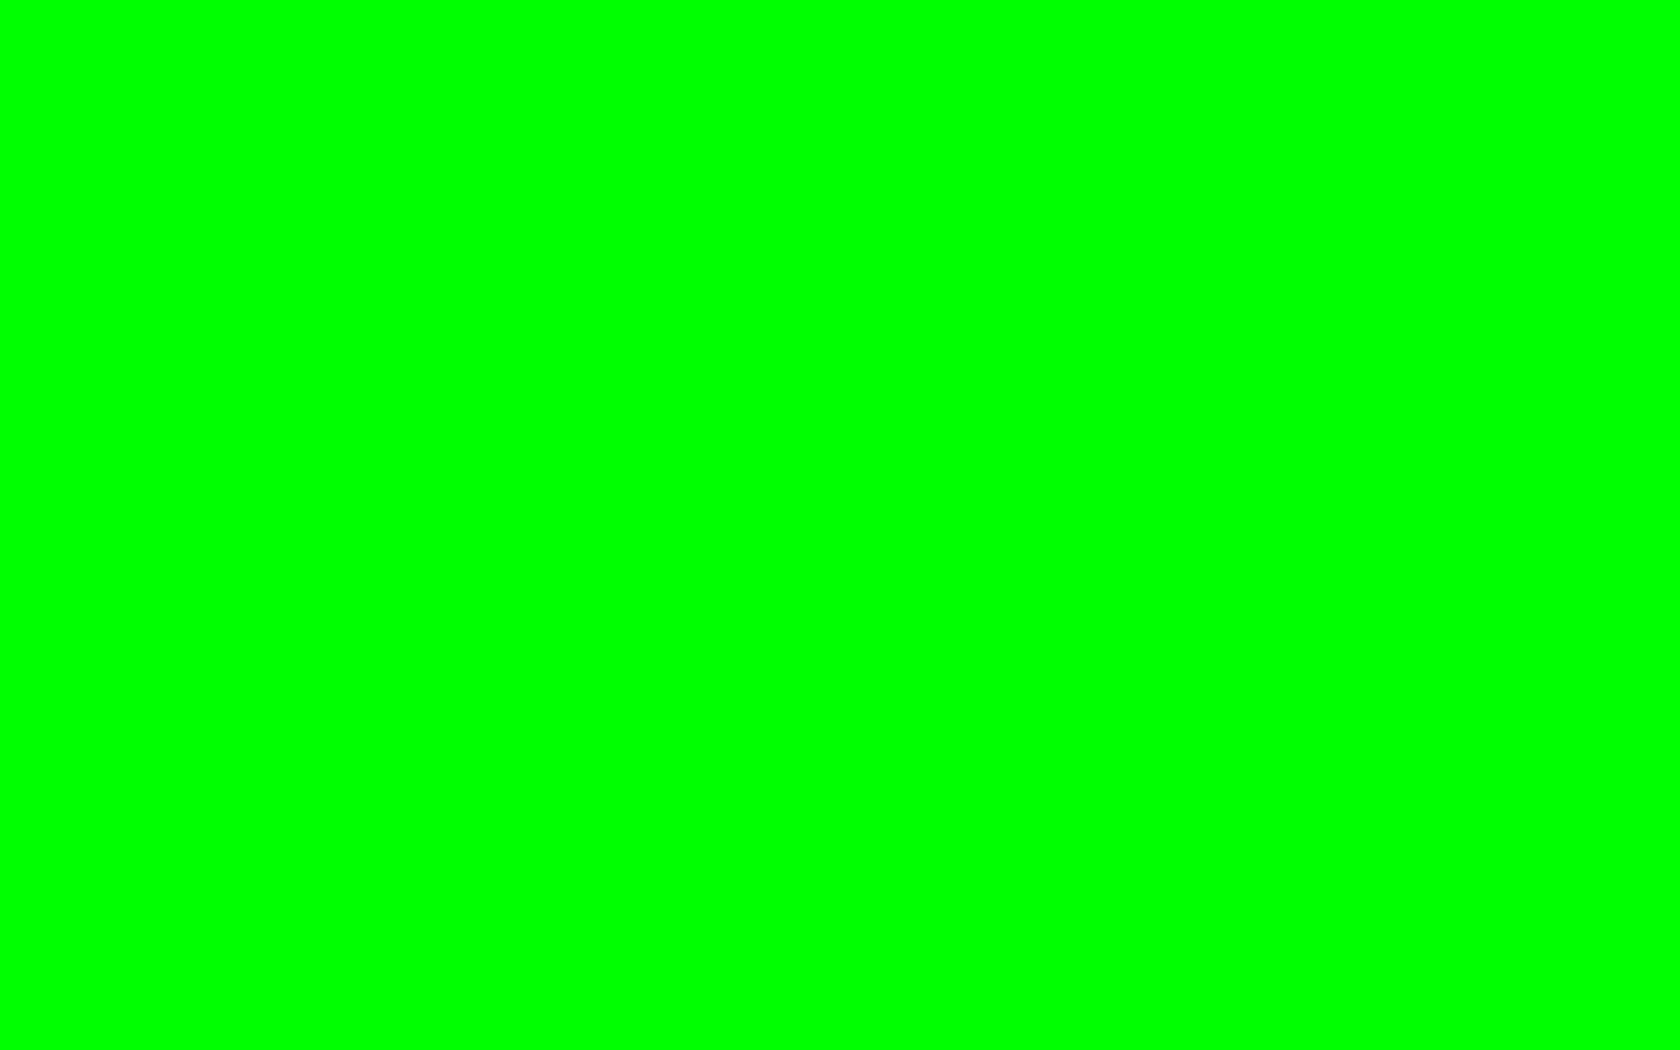 1680x1050 Green X11 Gui Green Solid Color Background